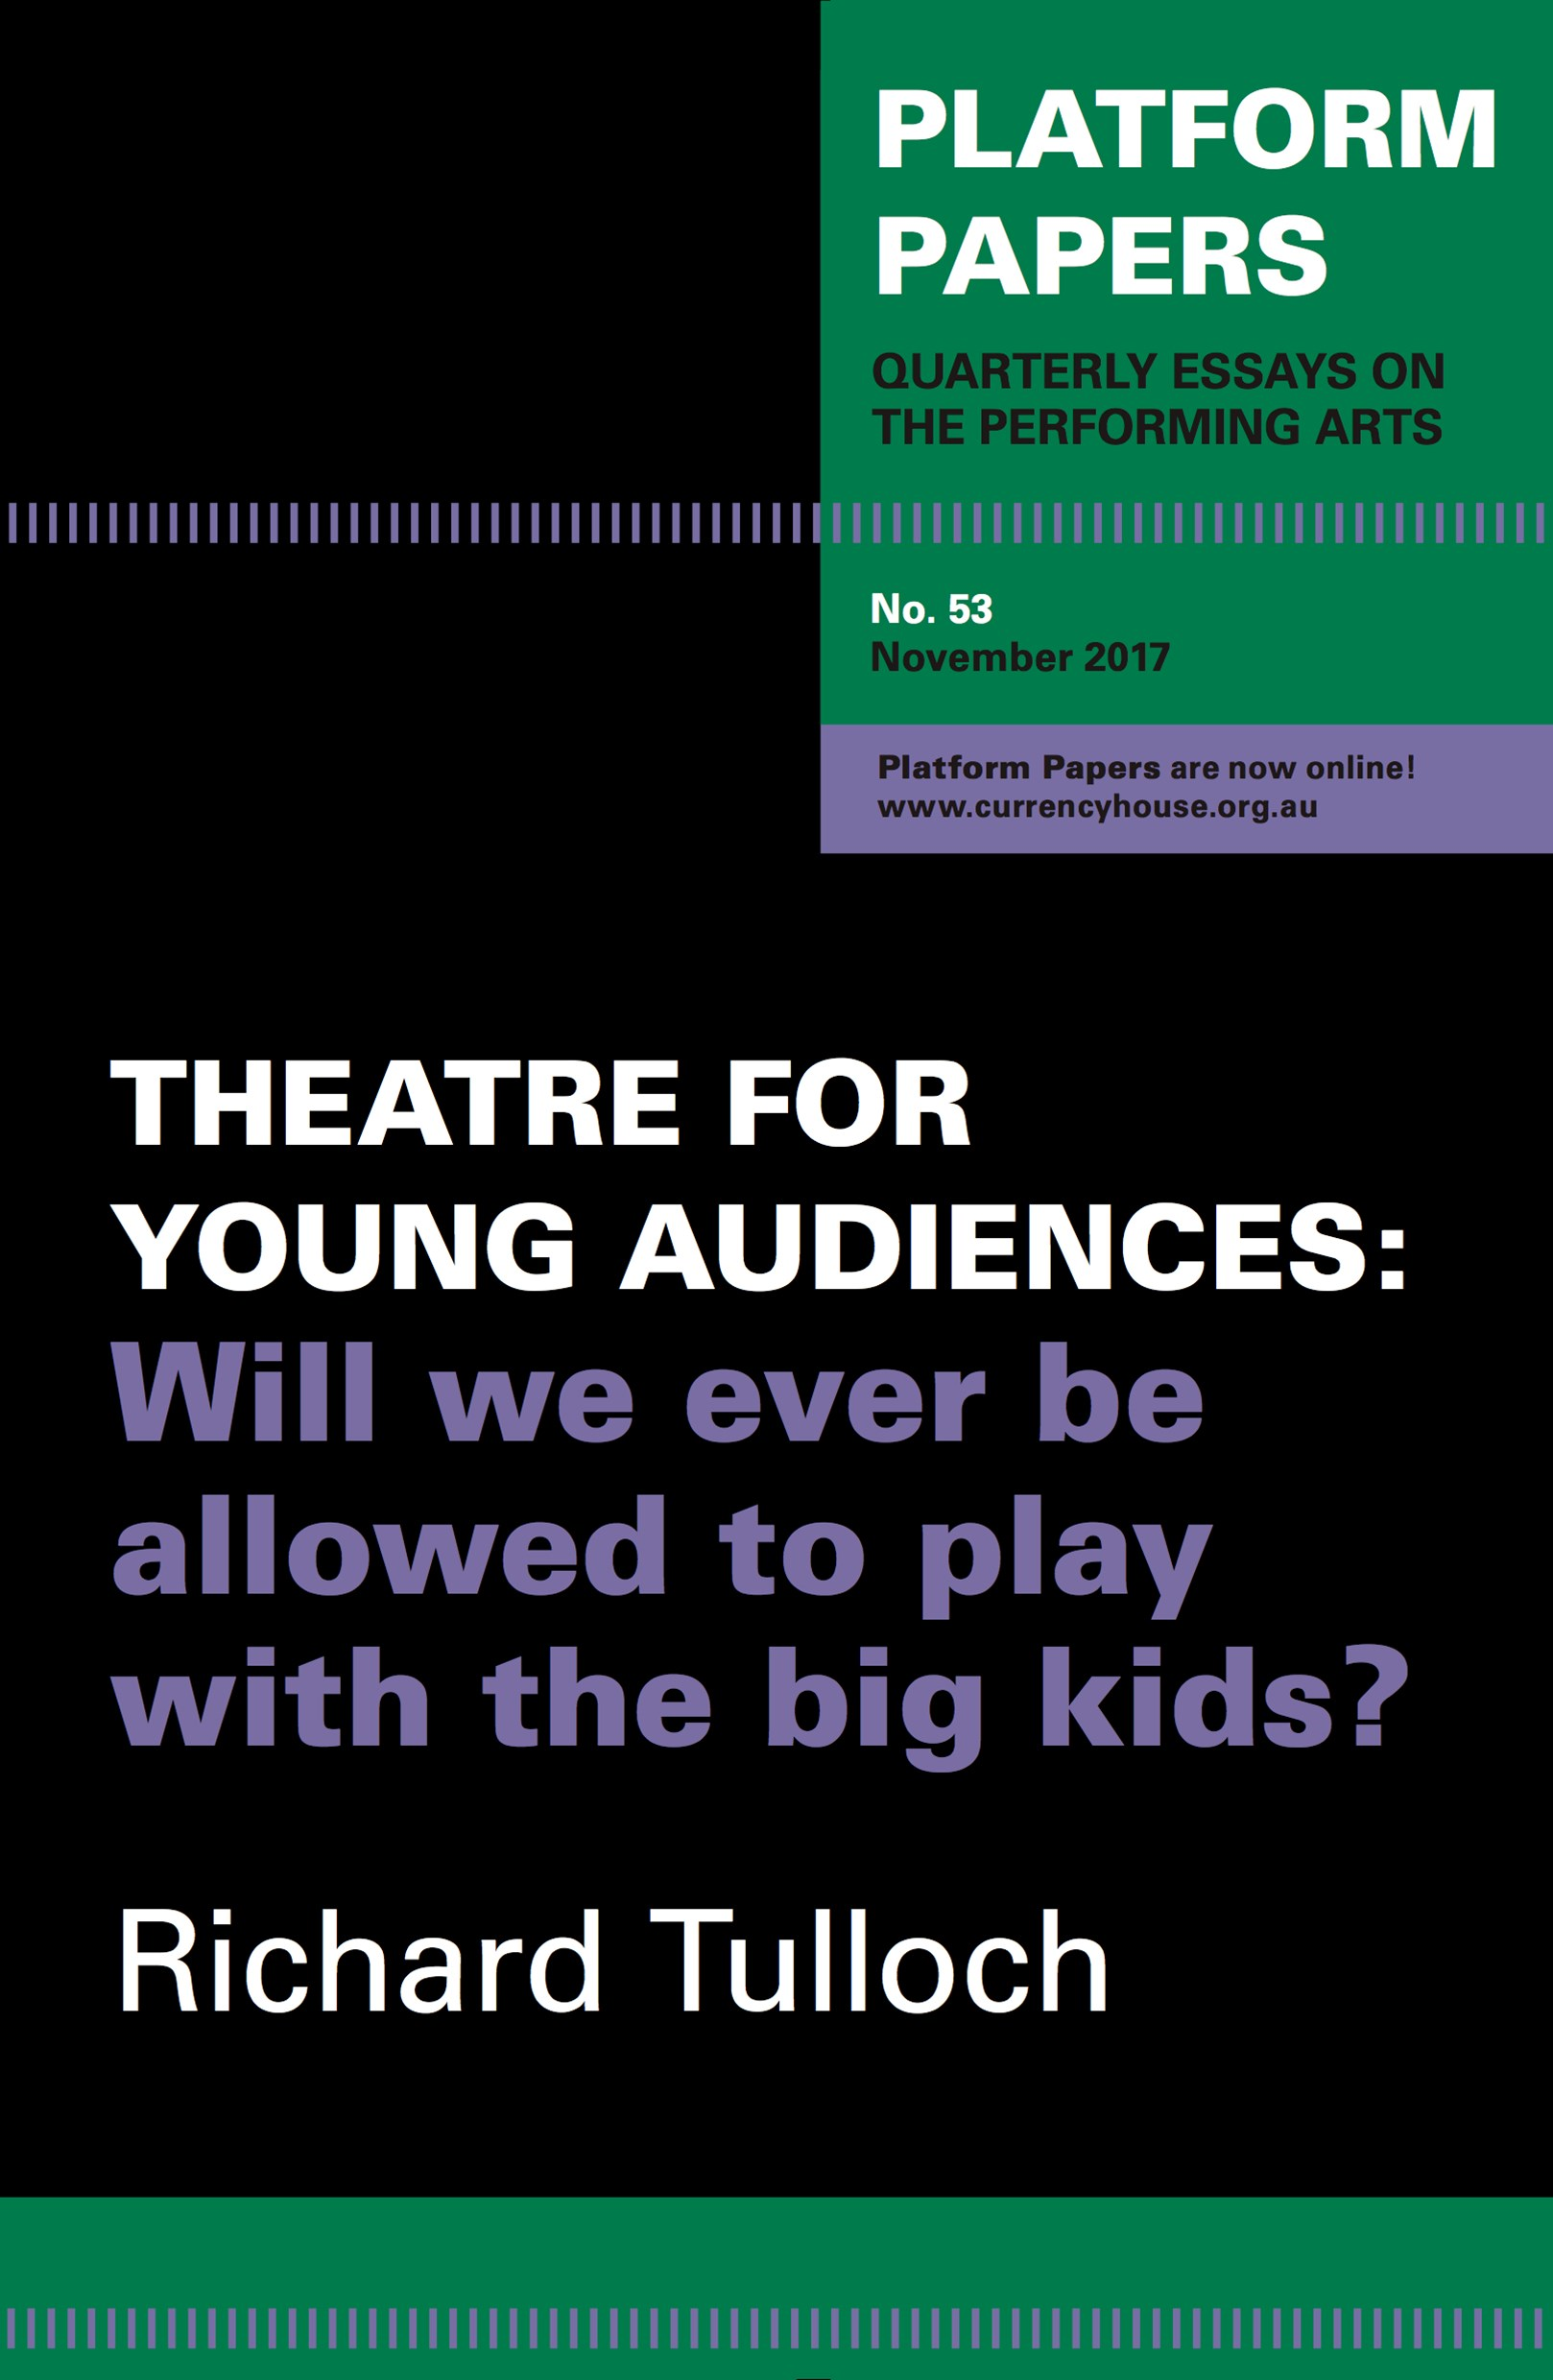 Platform Papers 53 - Theatre for Young Audiences